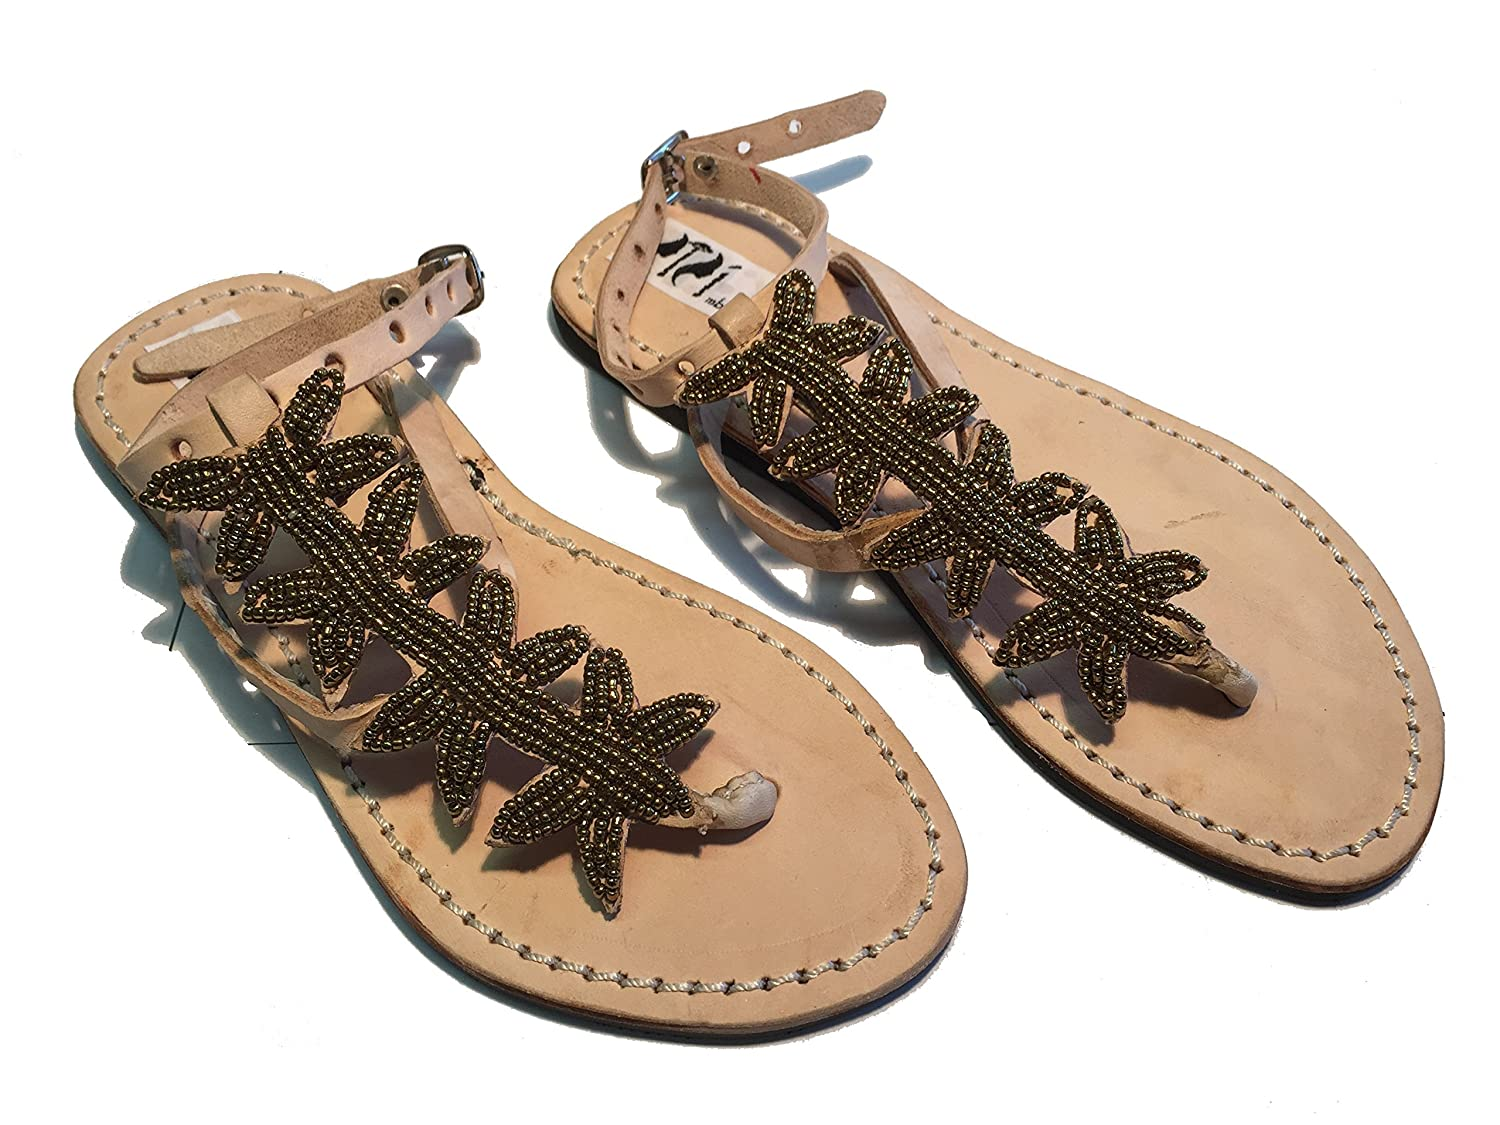 SISI SISI mbili , Sandales Sandales pour femme - Or or 36 - 9797745 - reprogrammed.space